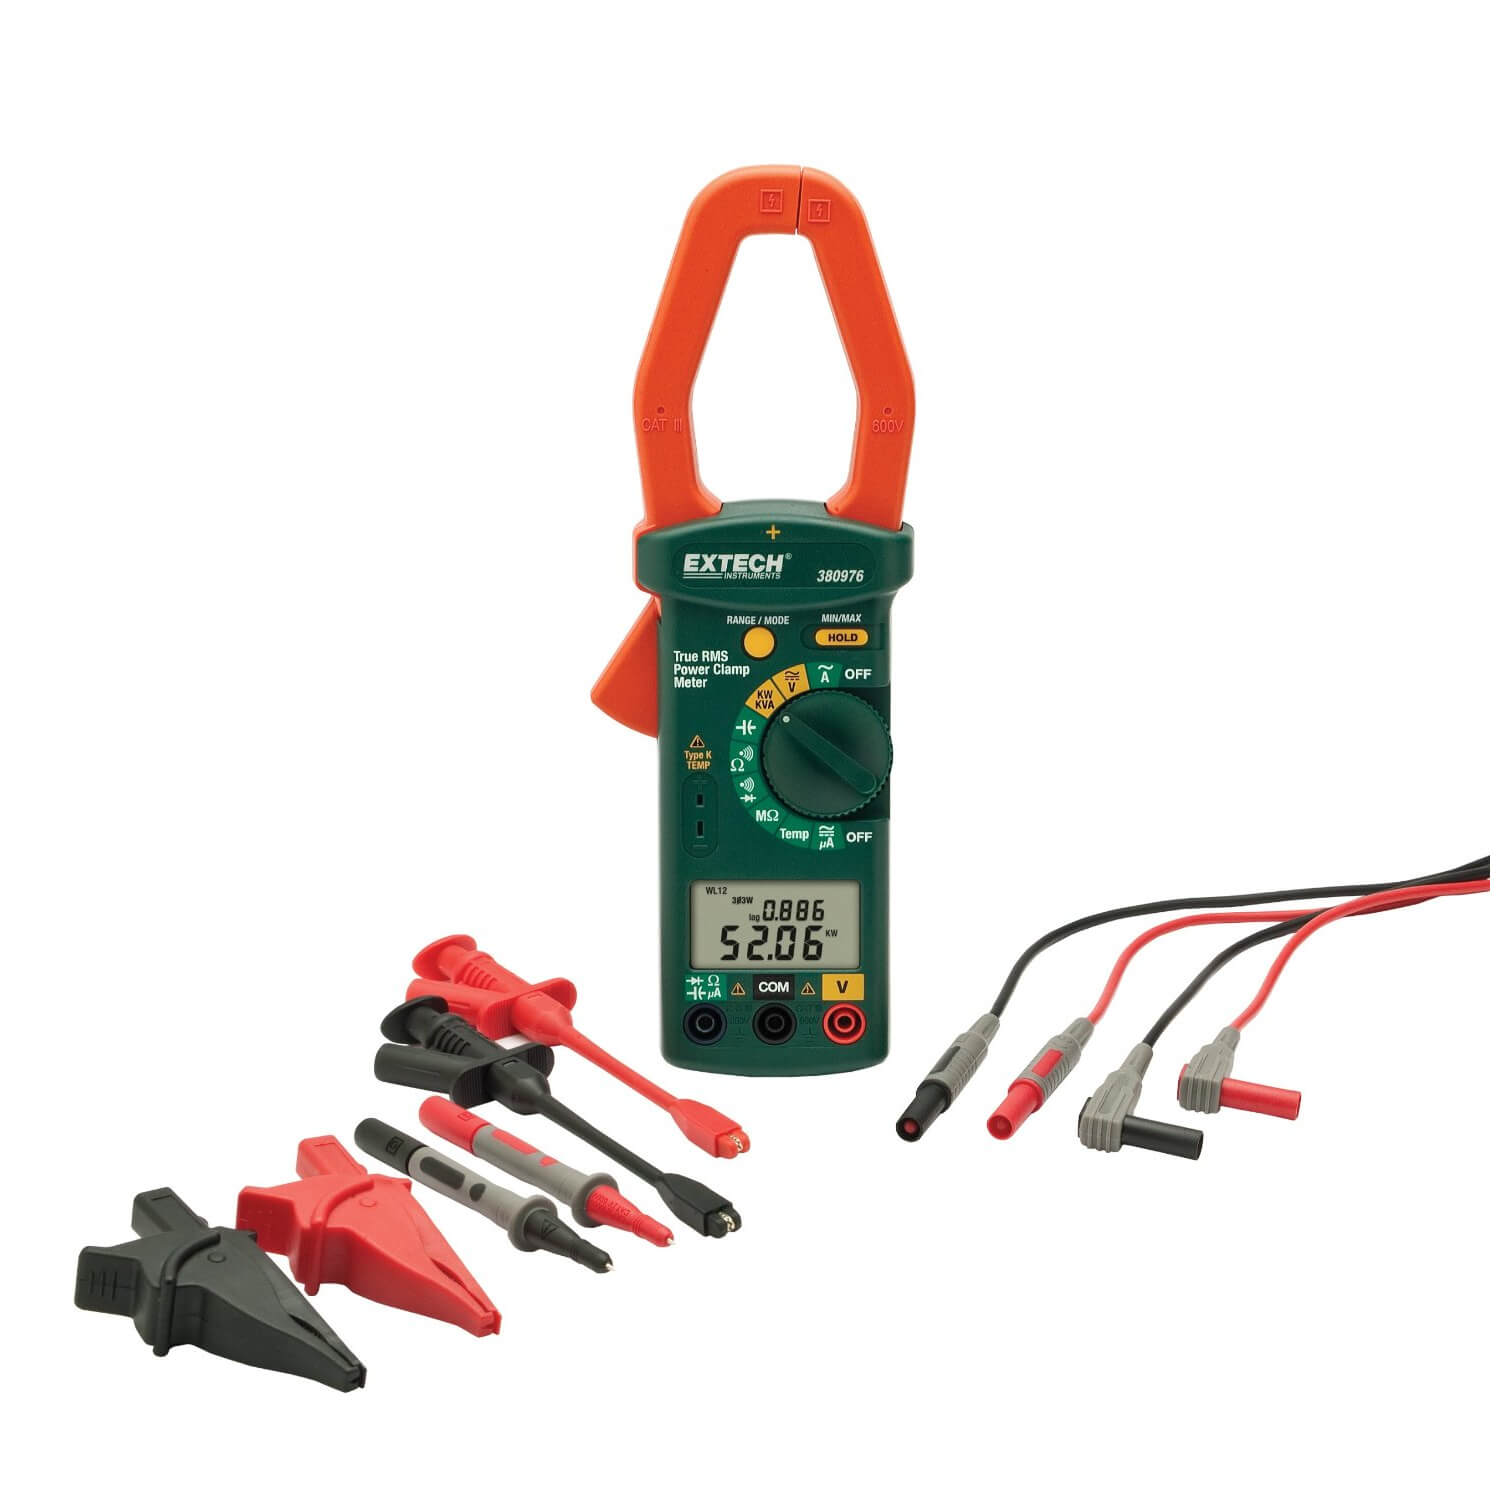 Extech 380976-K Clamp-on AC Power Meter Kit